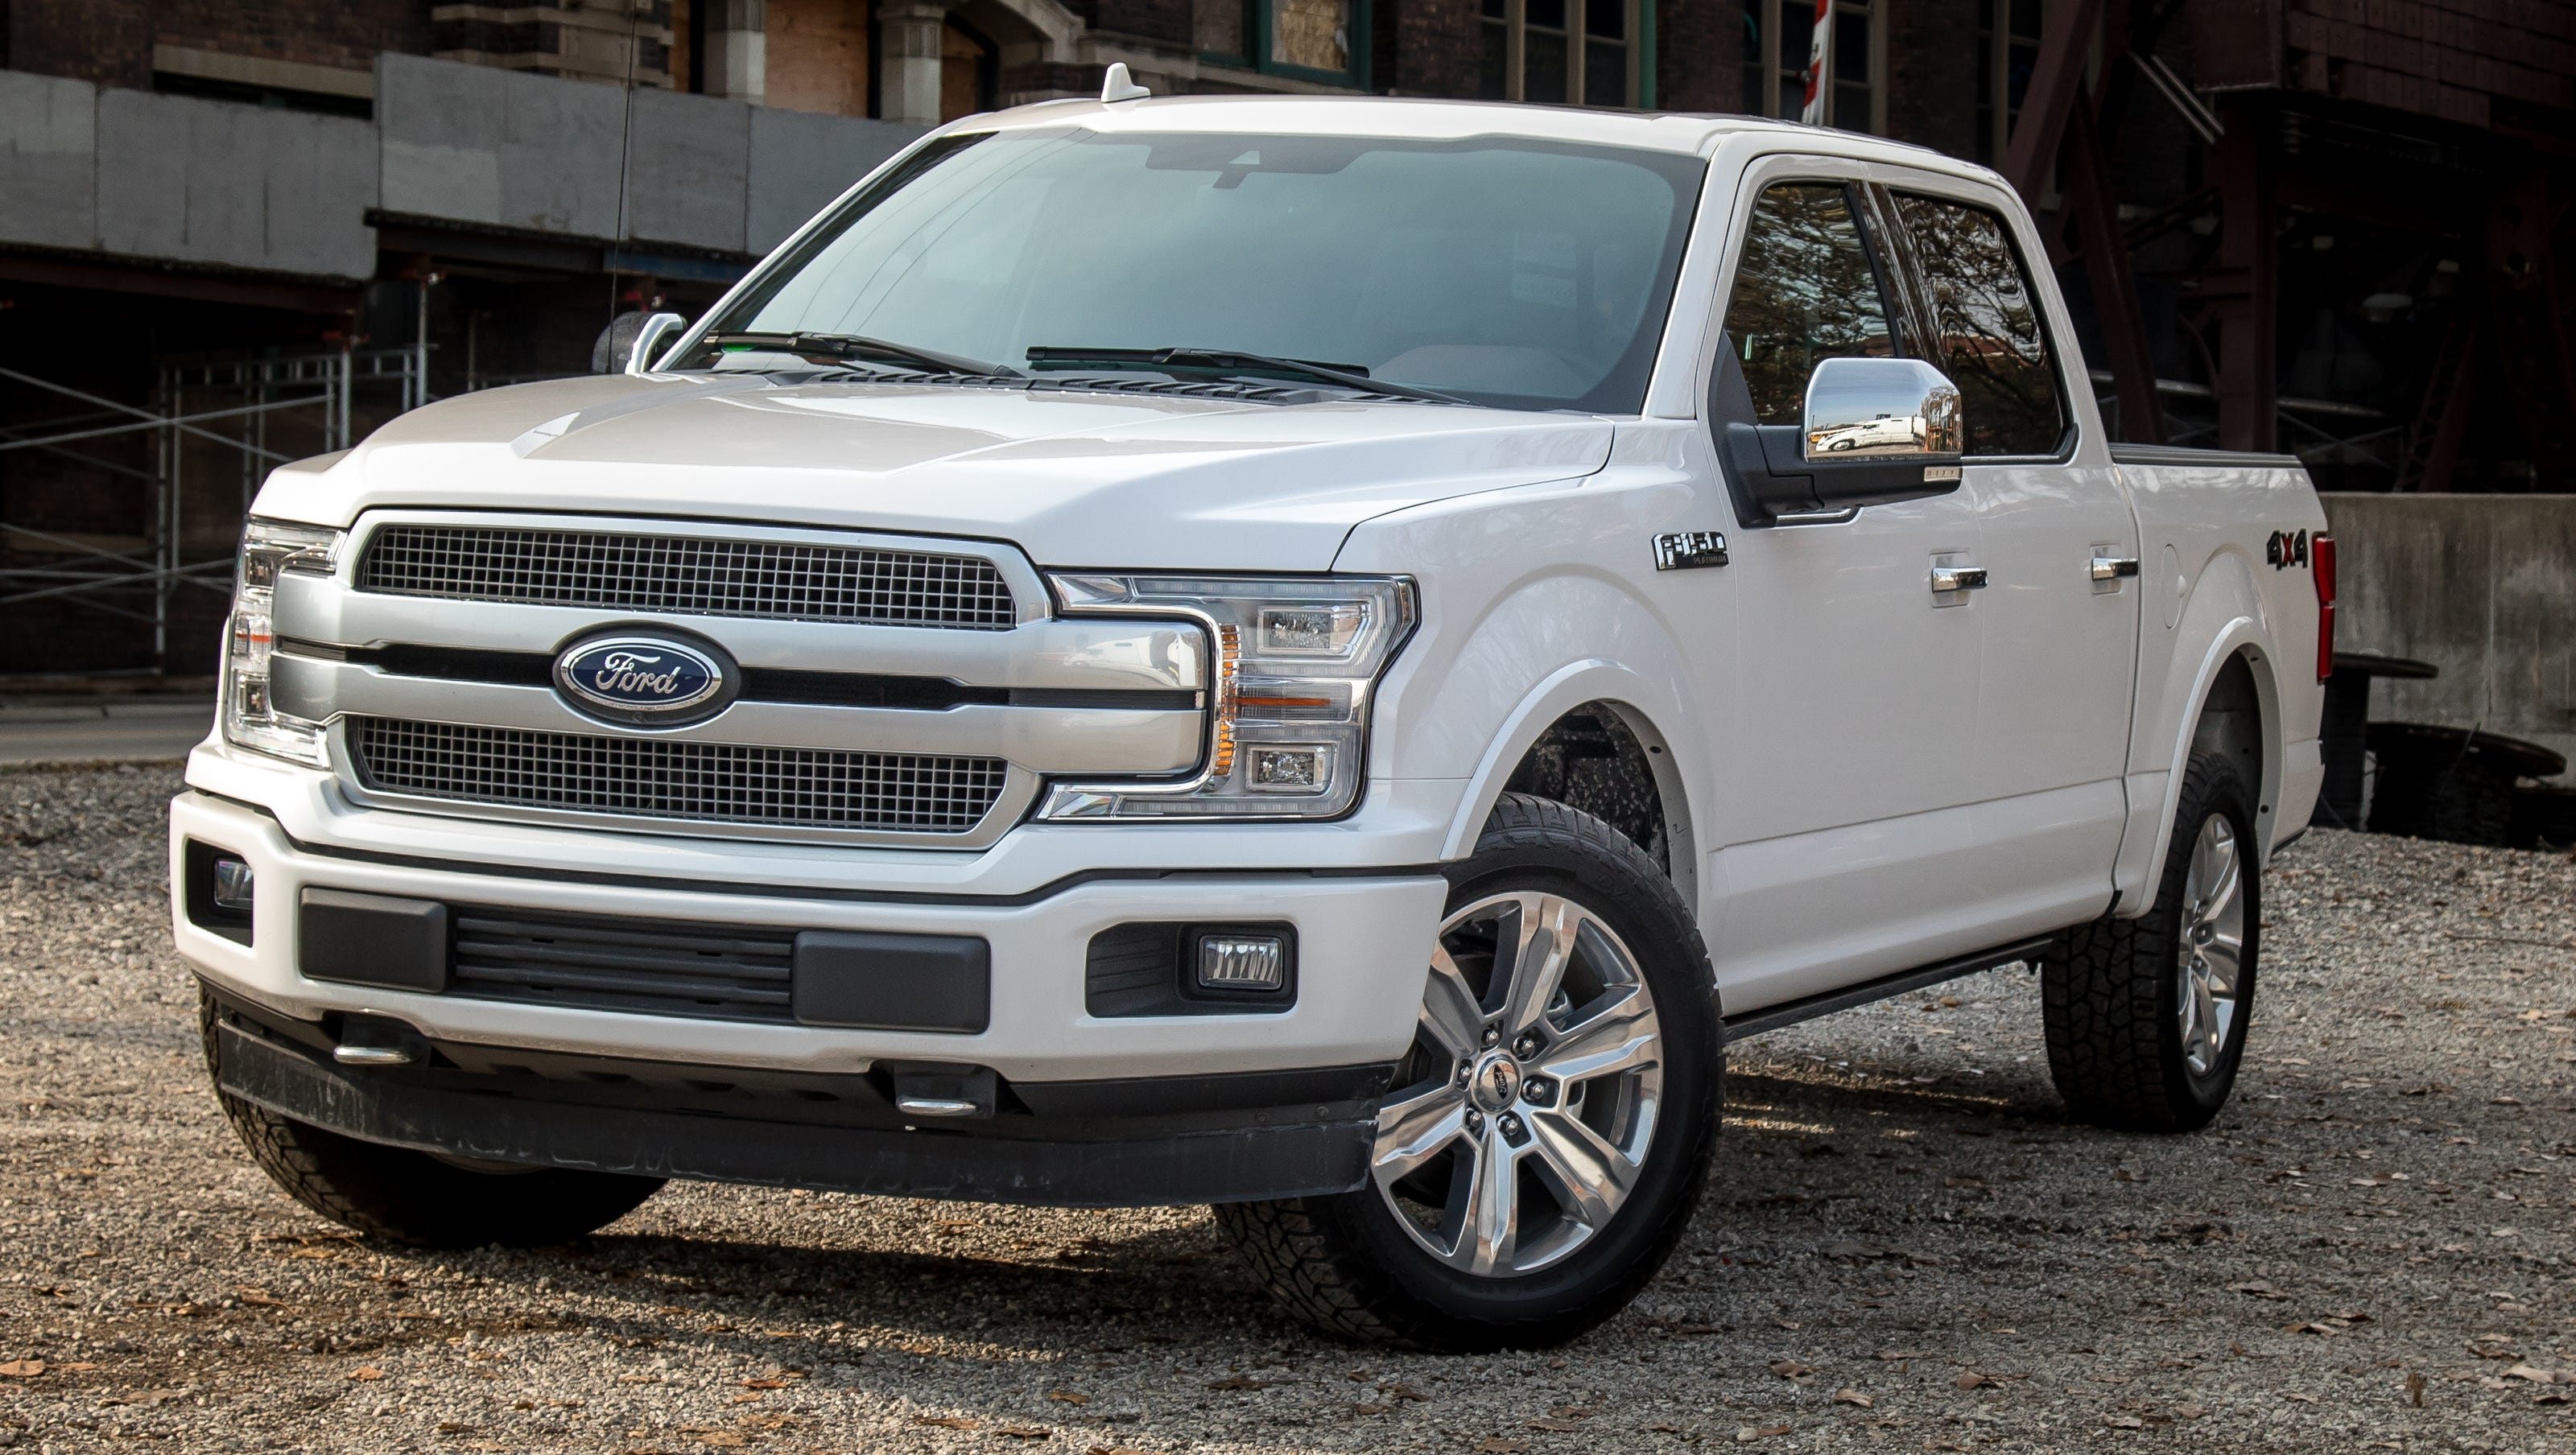 2010 Ford F150 Lariat News >> Review: Ford's plush F-150 Platinum gets a V-8 update